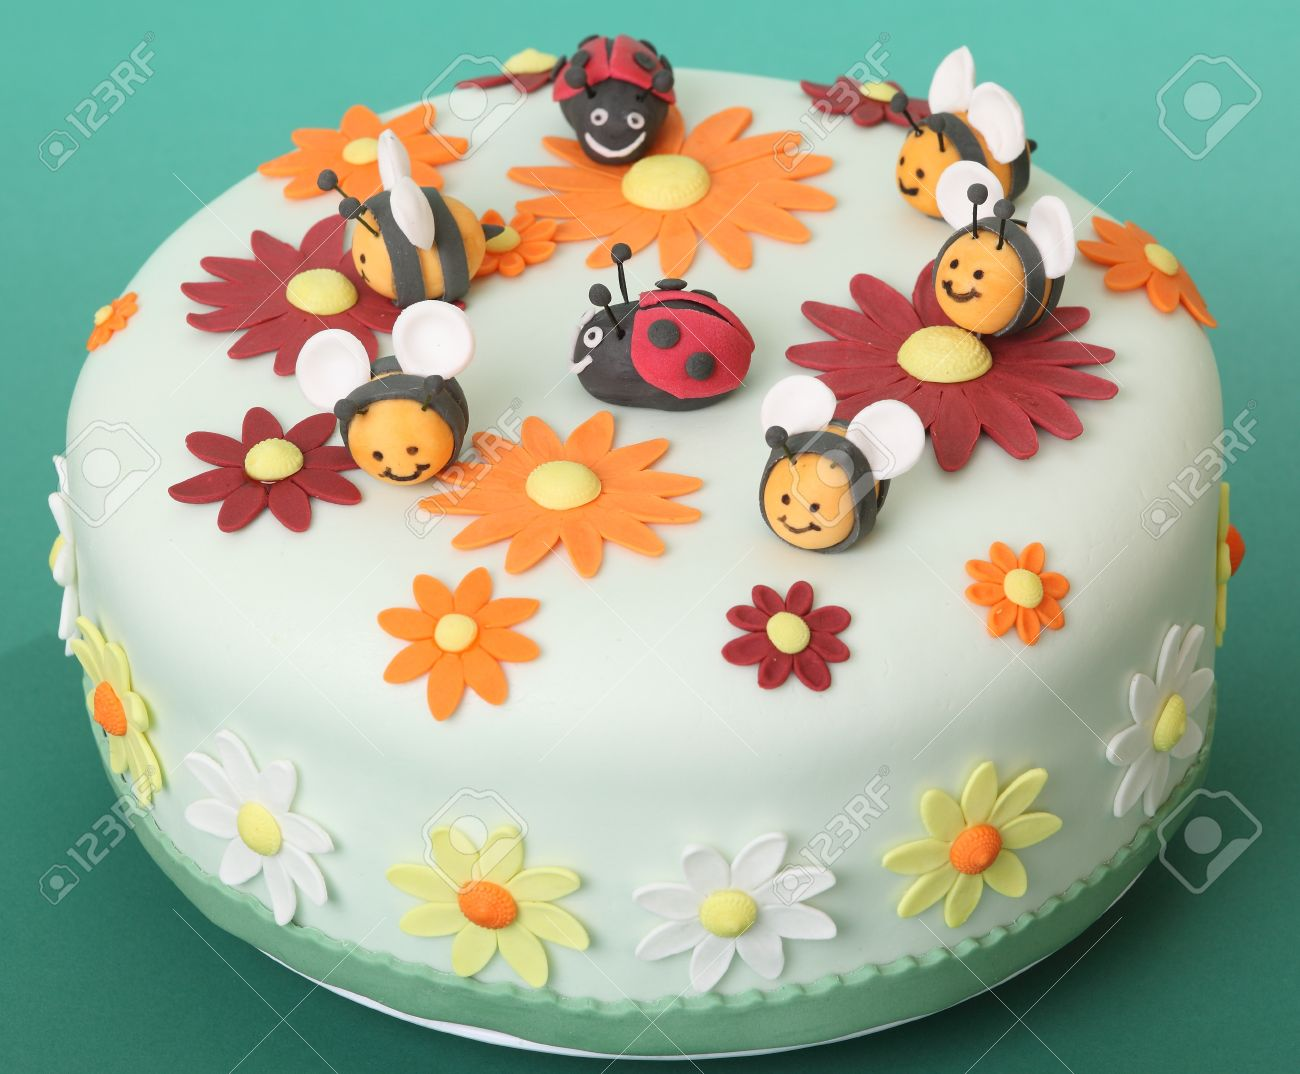 Birthday Cake With Flowers Sugar Bees And Ladybugs Stock Photo